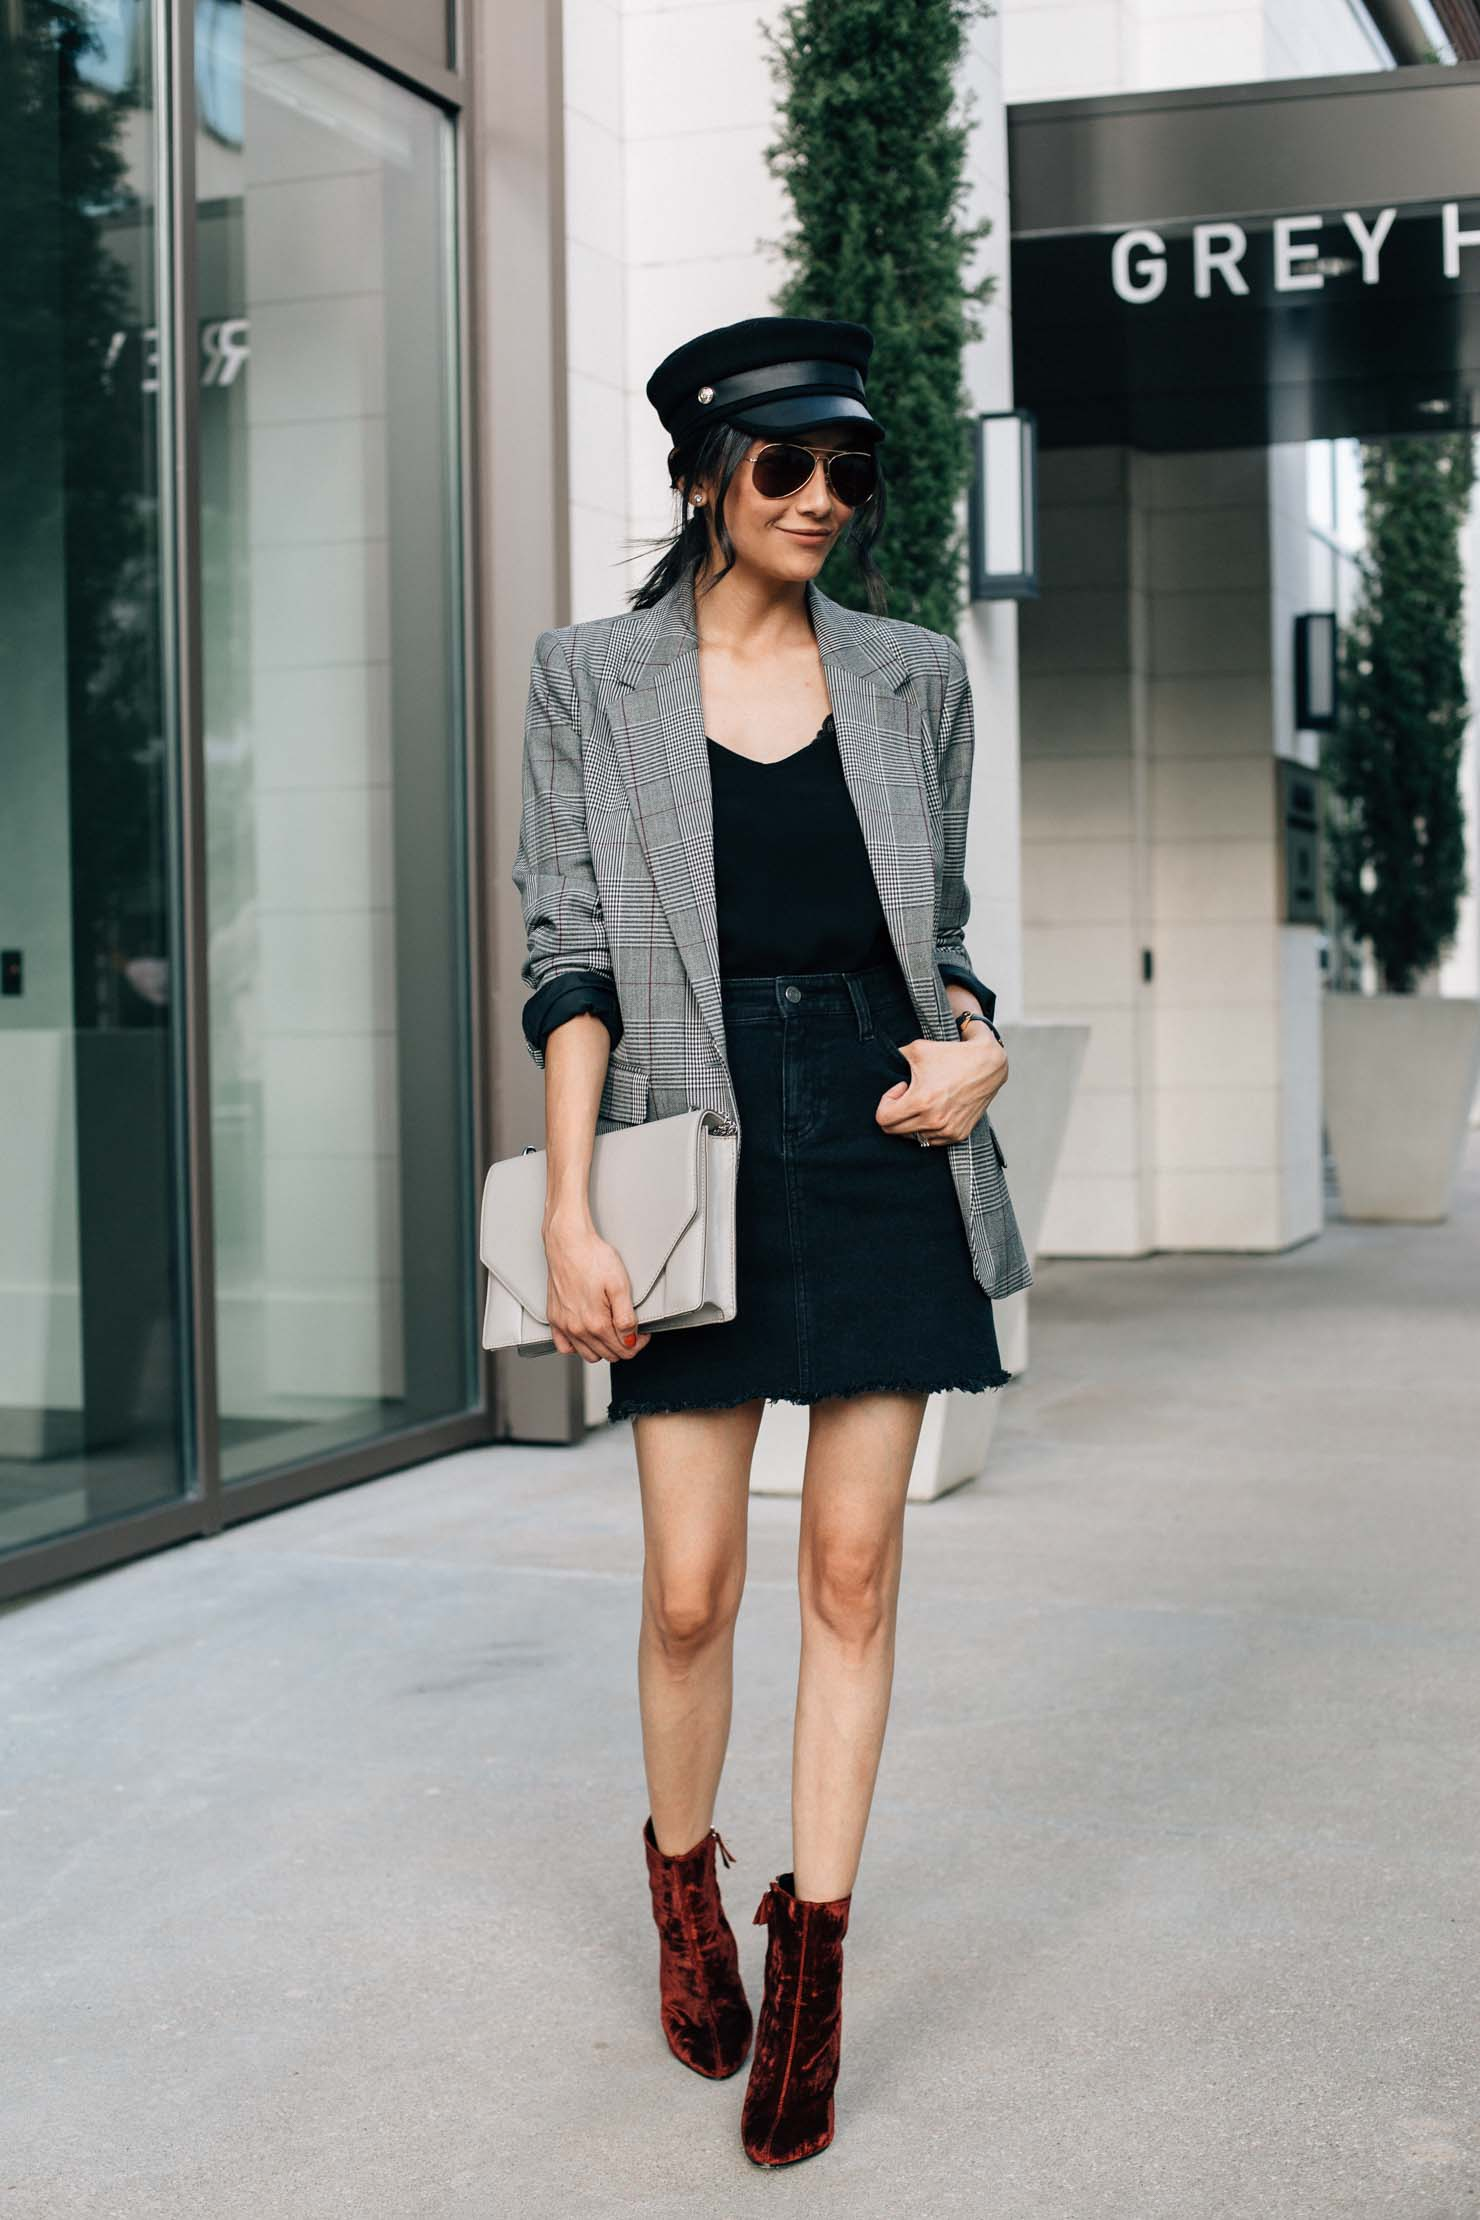 fashion blogger Lilly Beltran styles a black denim skirt with a plaid blazer and velvet booties for a chic street style look